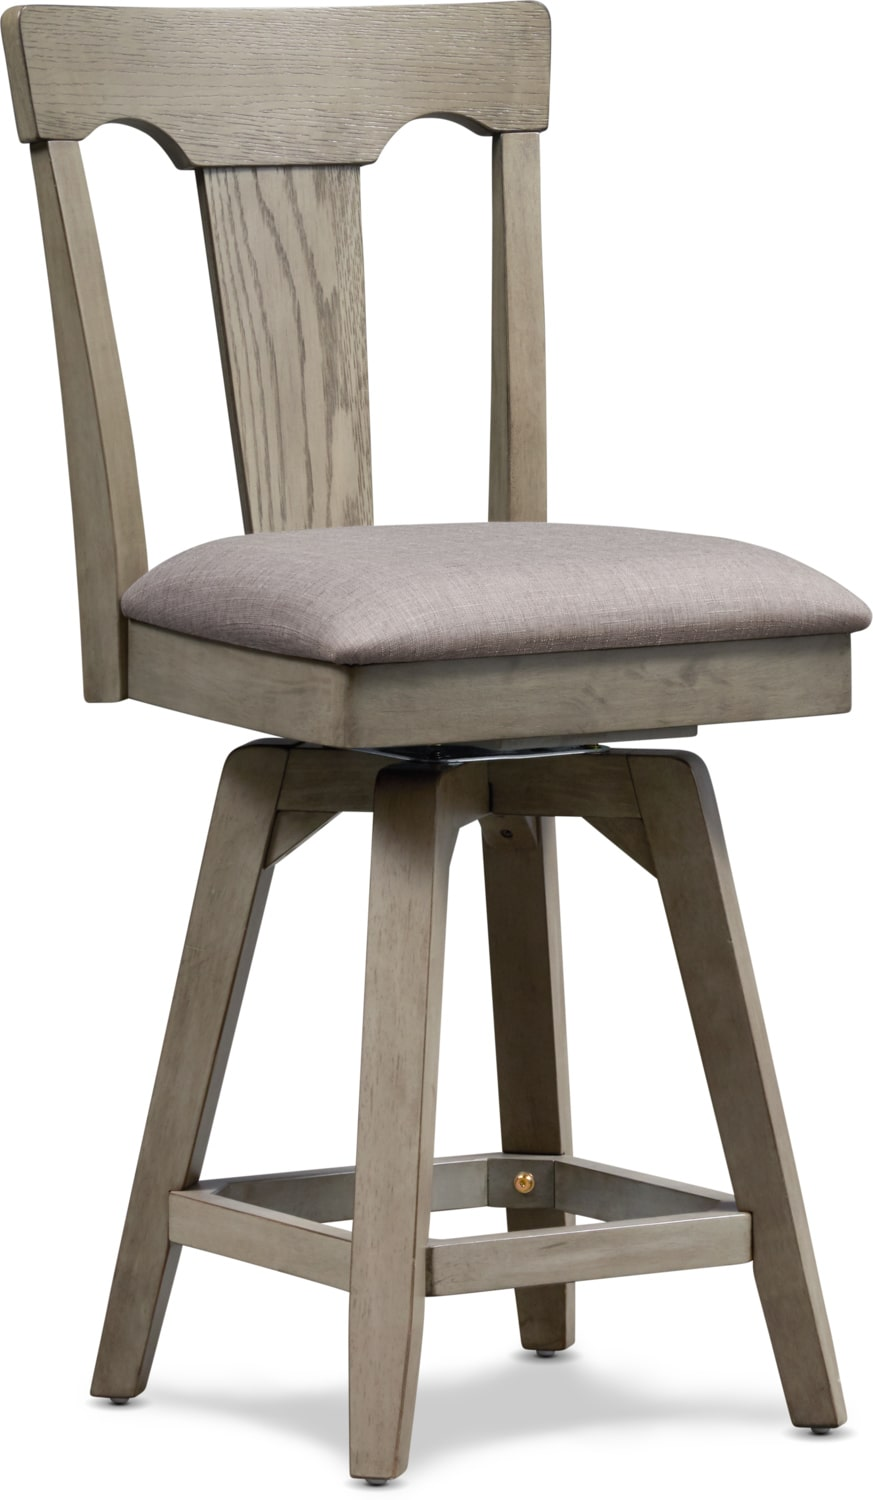 Strange Maxton Counter Height Stool Gmtry Best Dining Table And Chair Ideas Images Gmtryco